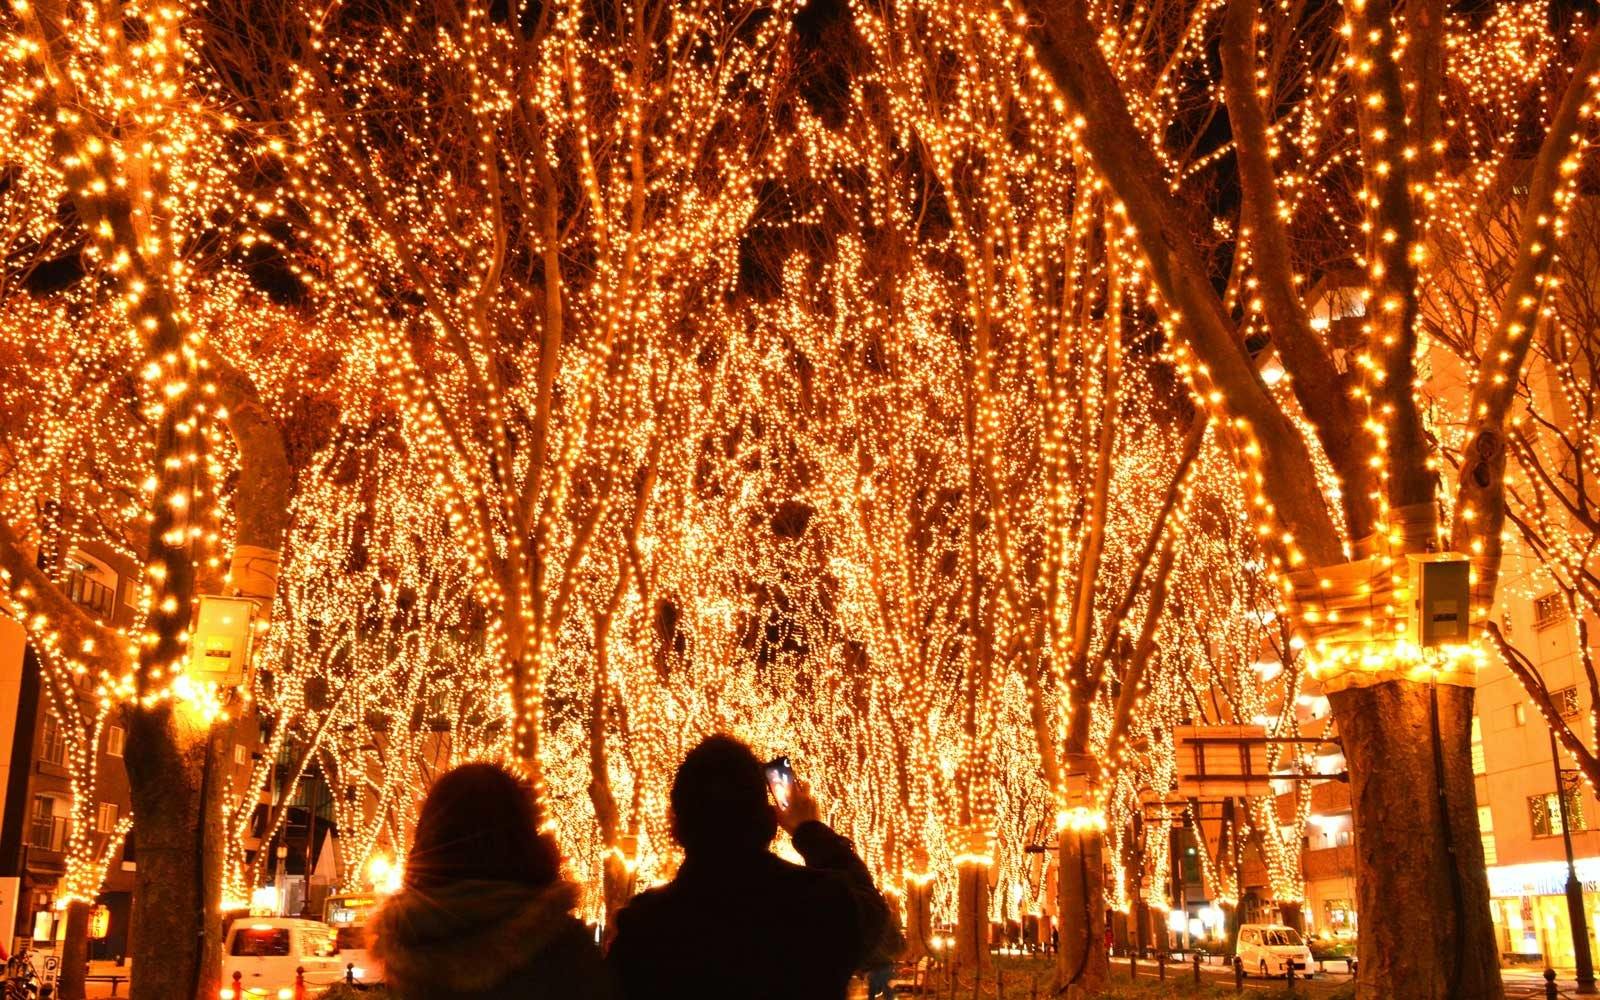 Christmas illuminations in Sendai, Japan